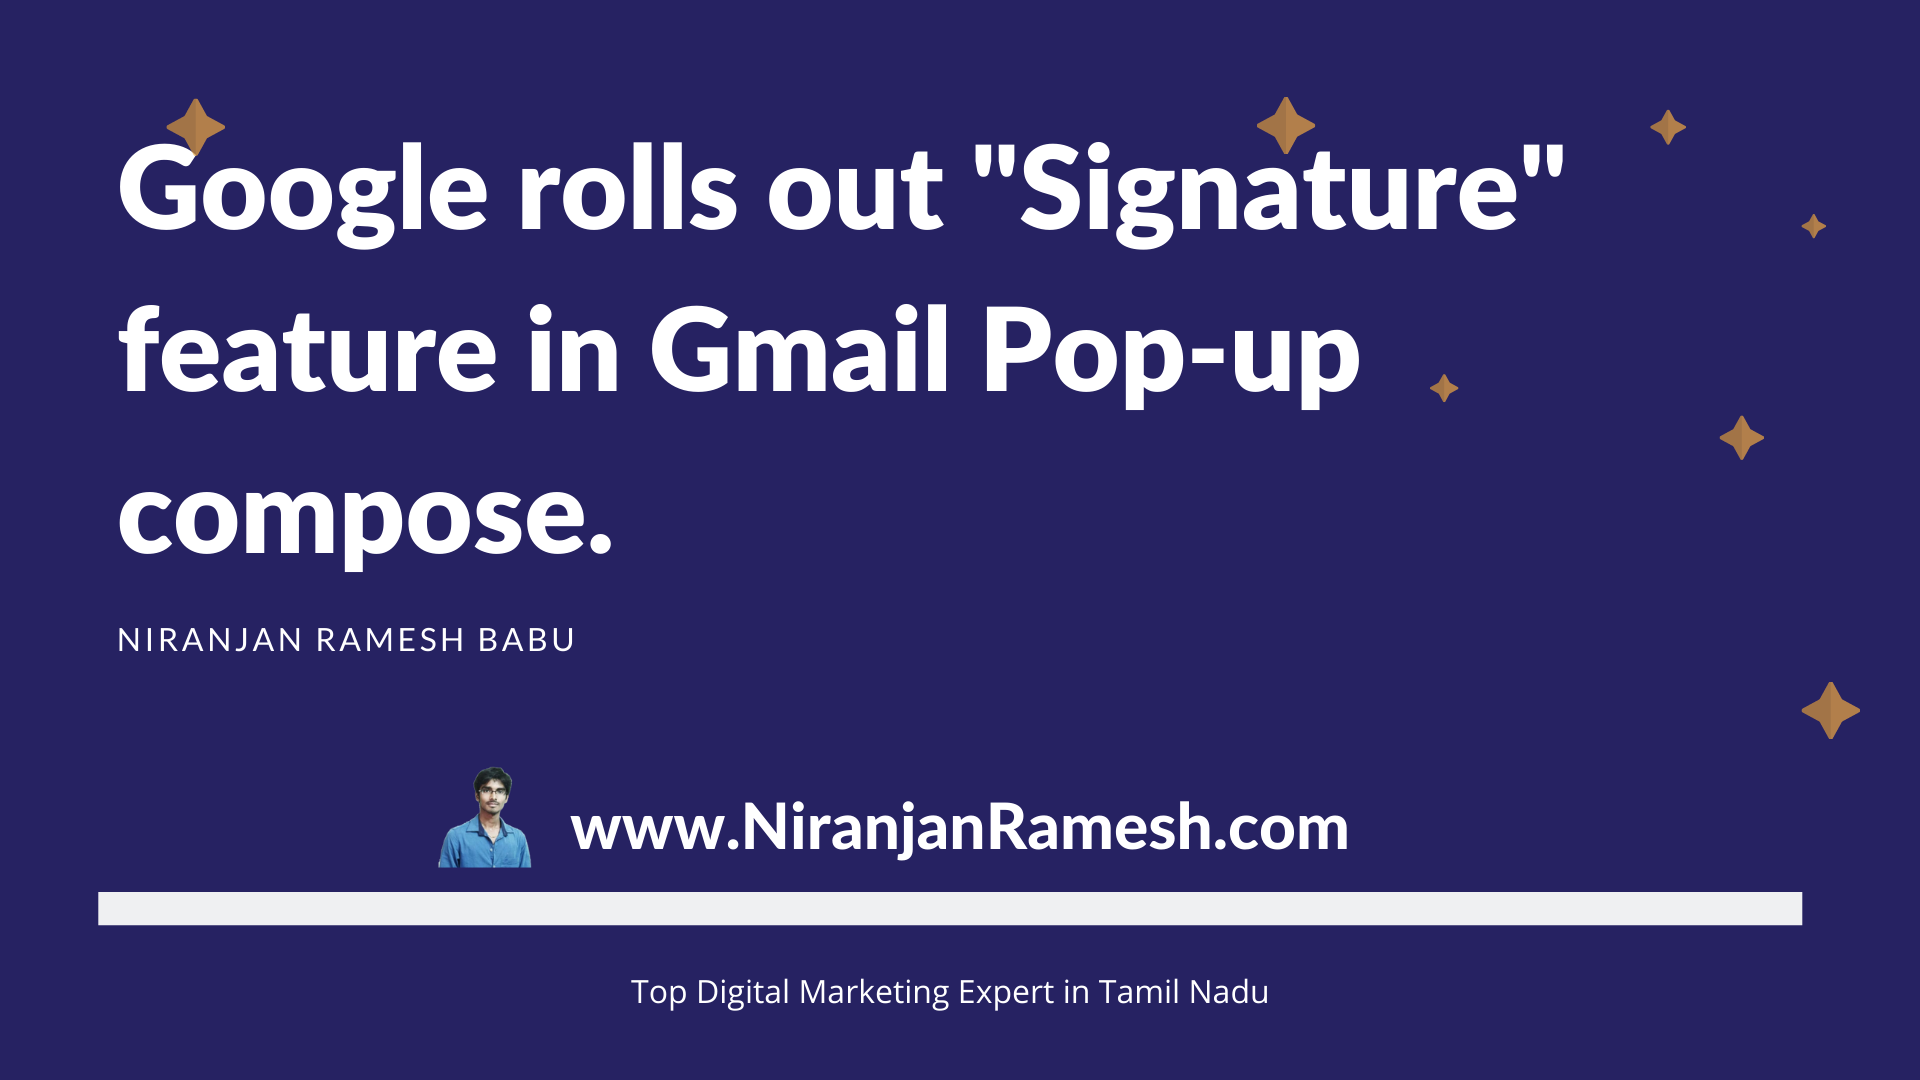 Google rolls out Signature feature in Gmail Pop-up compose – Niranjan Digital Marketer in India